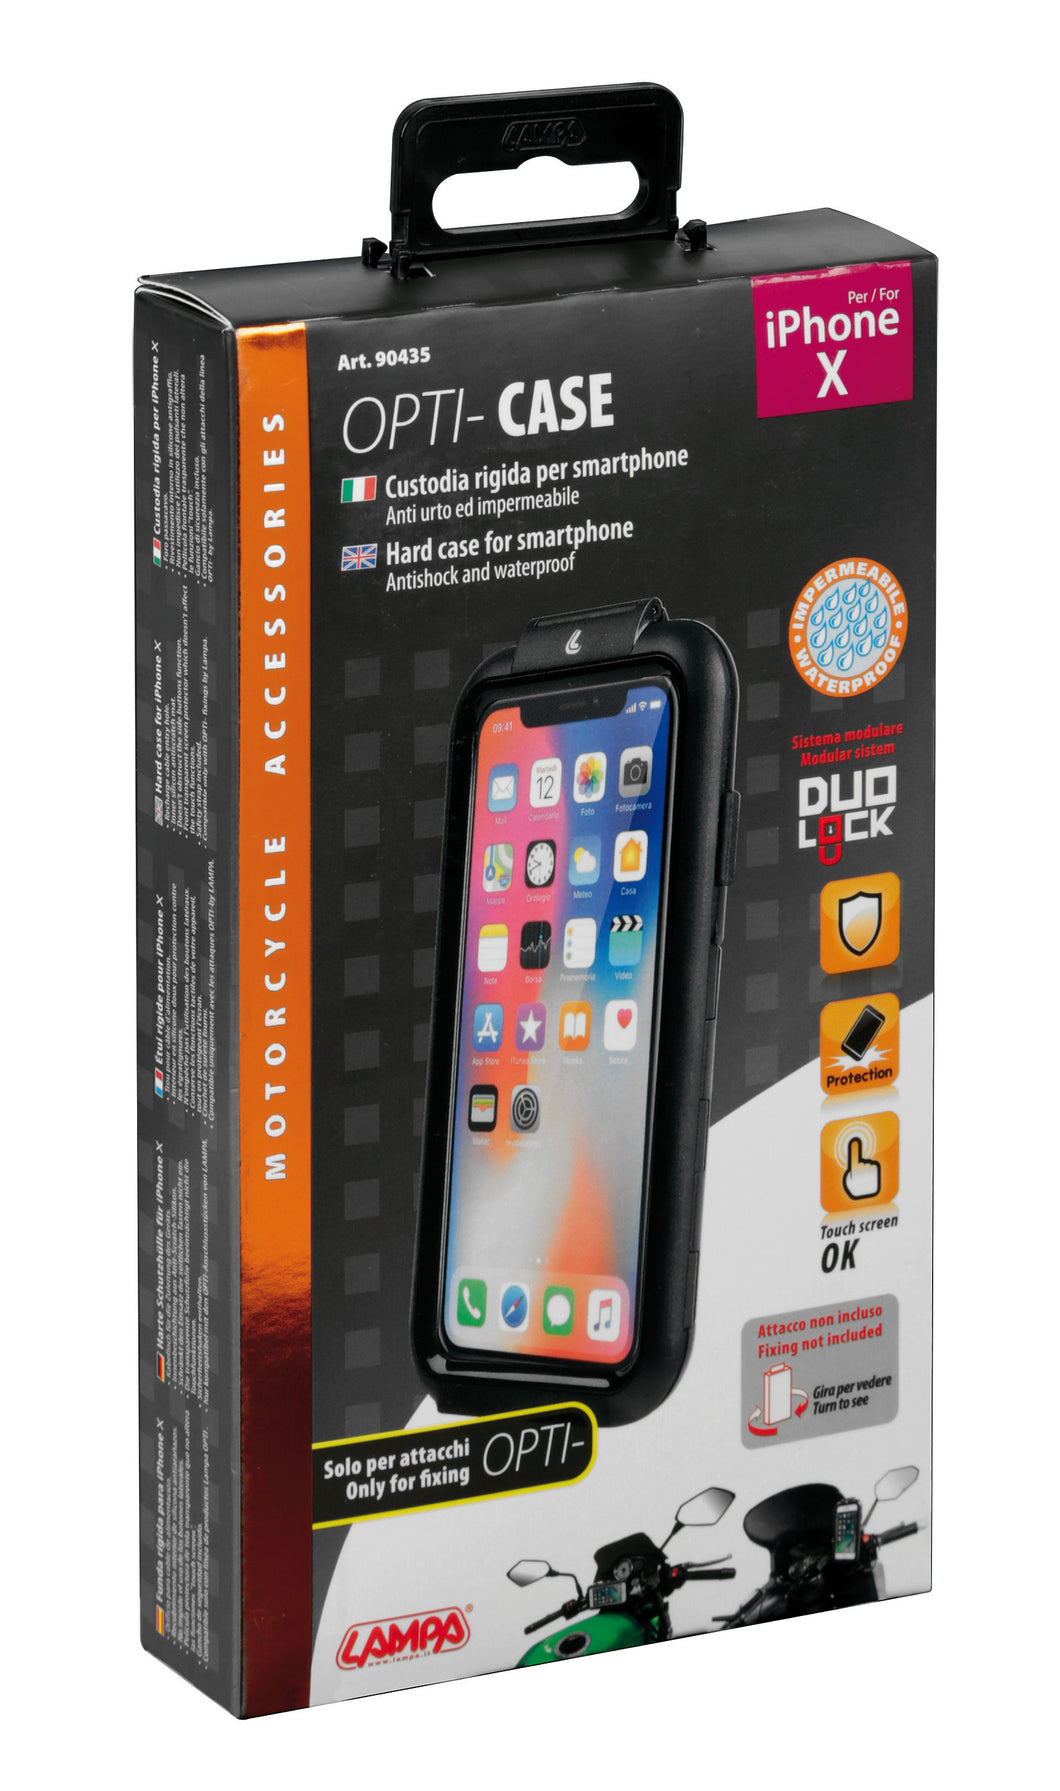 Opti Case custodia rigida per smartphone - iPhone X / Xs acquista